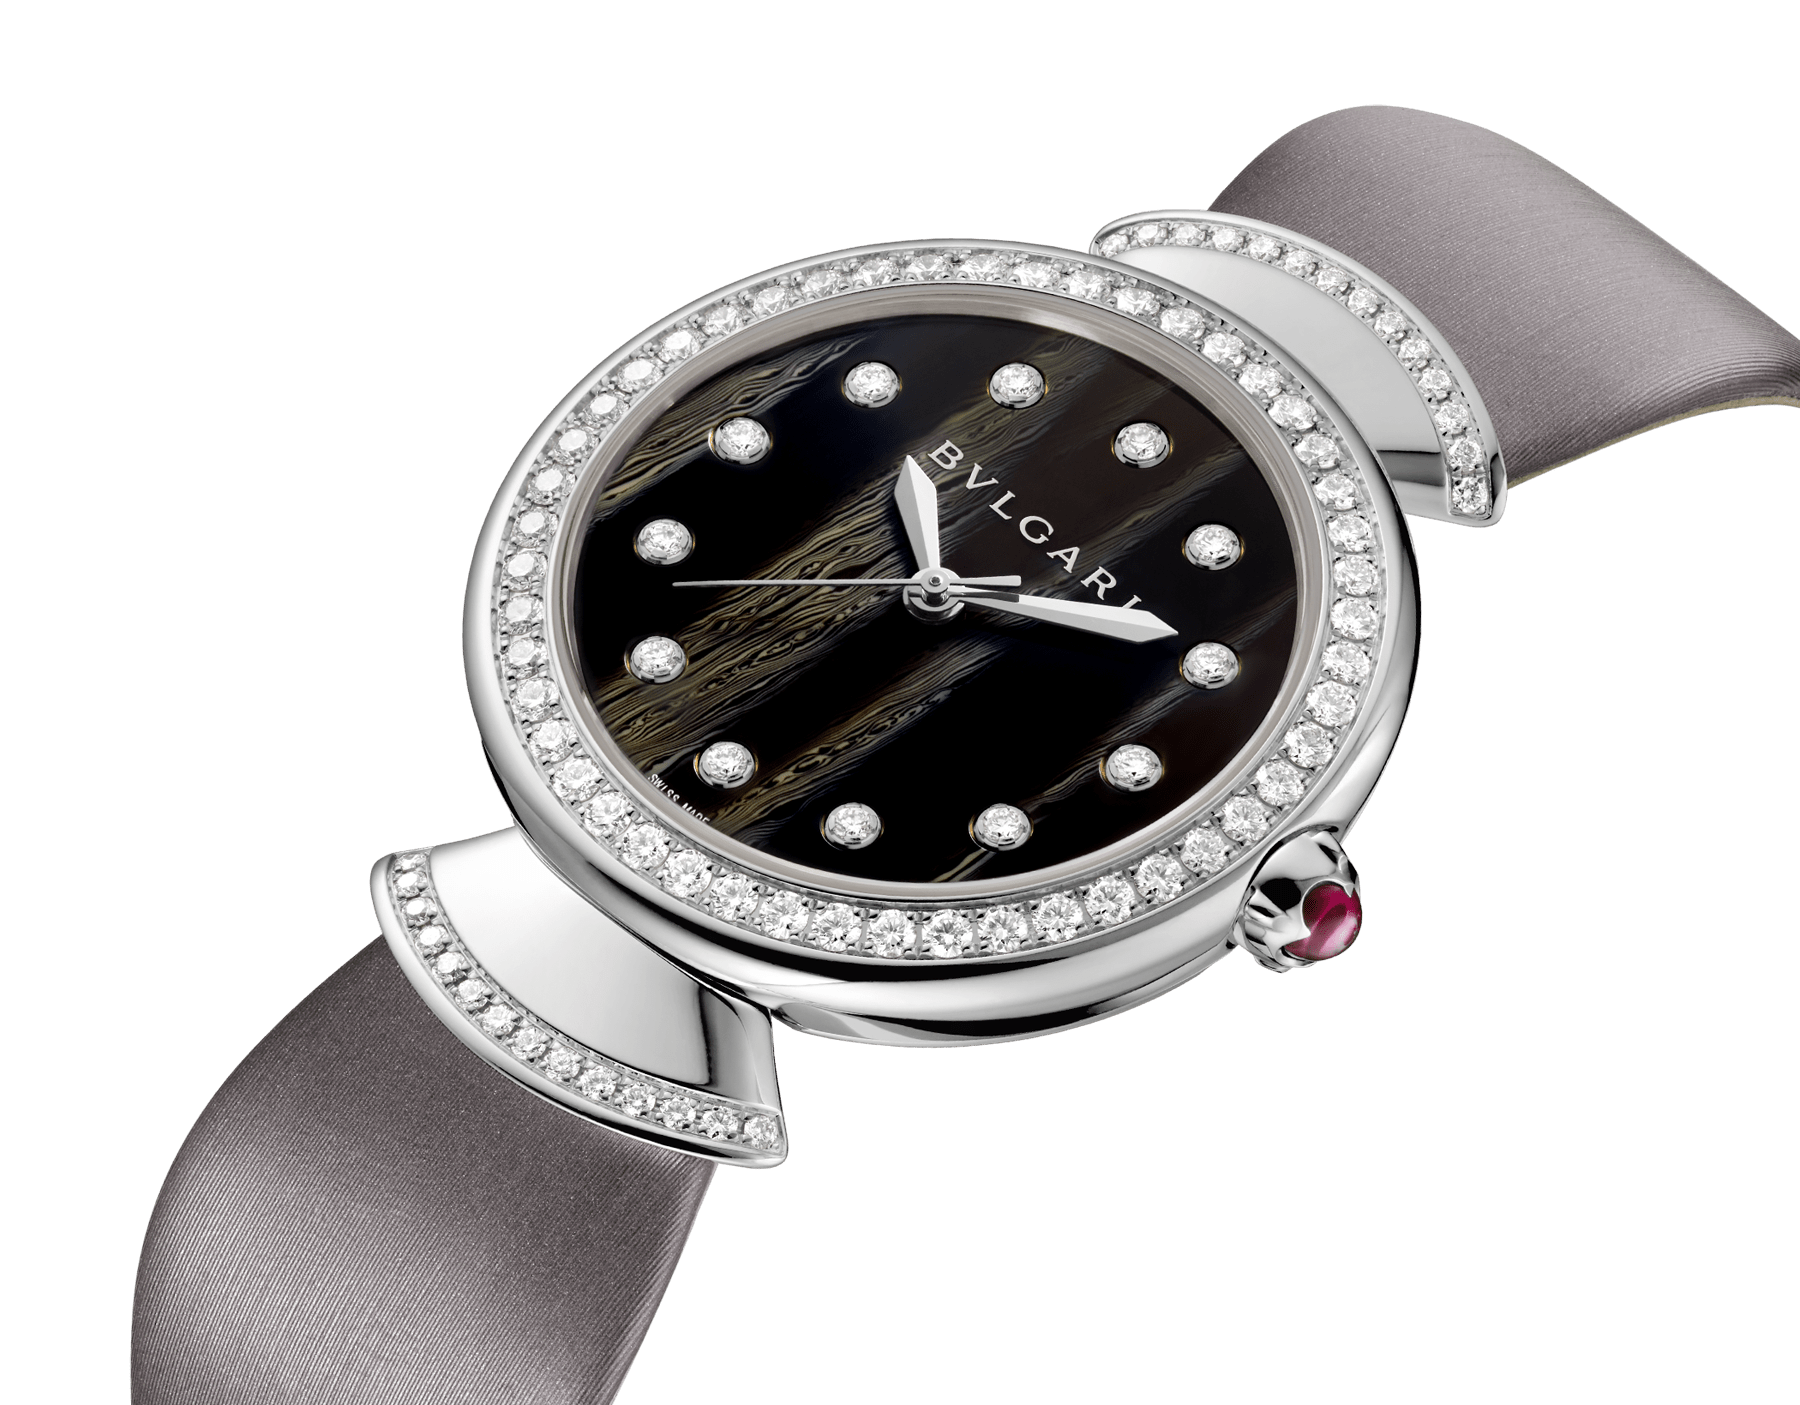 DIVAS' DREAM watch with 18 kt white gold case set with brilliant-cut diamonds, acetate dial, diamond indexes and grey satin bracelet 102576 image 2